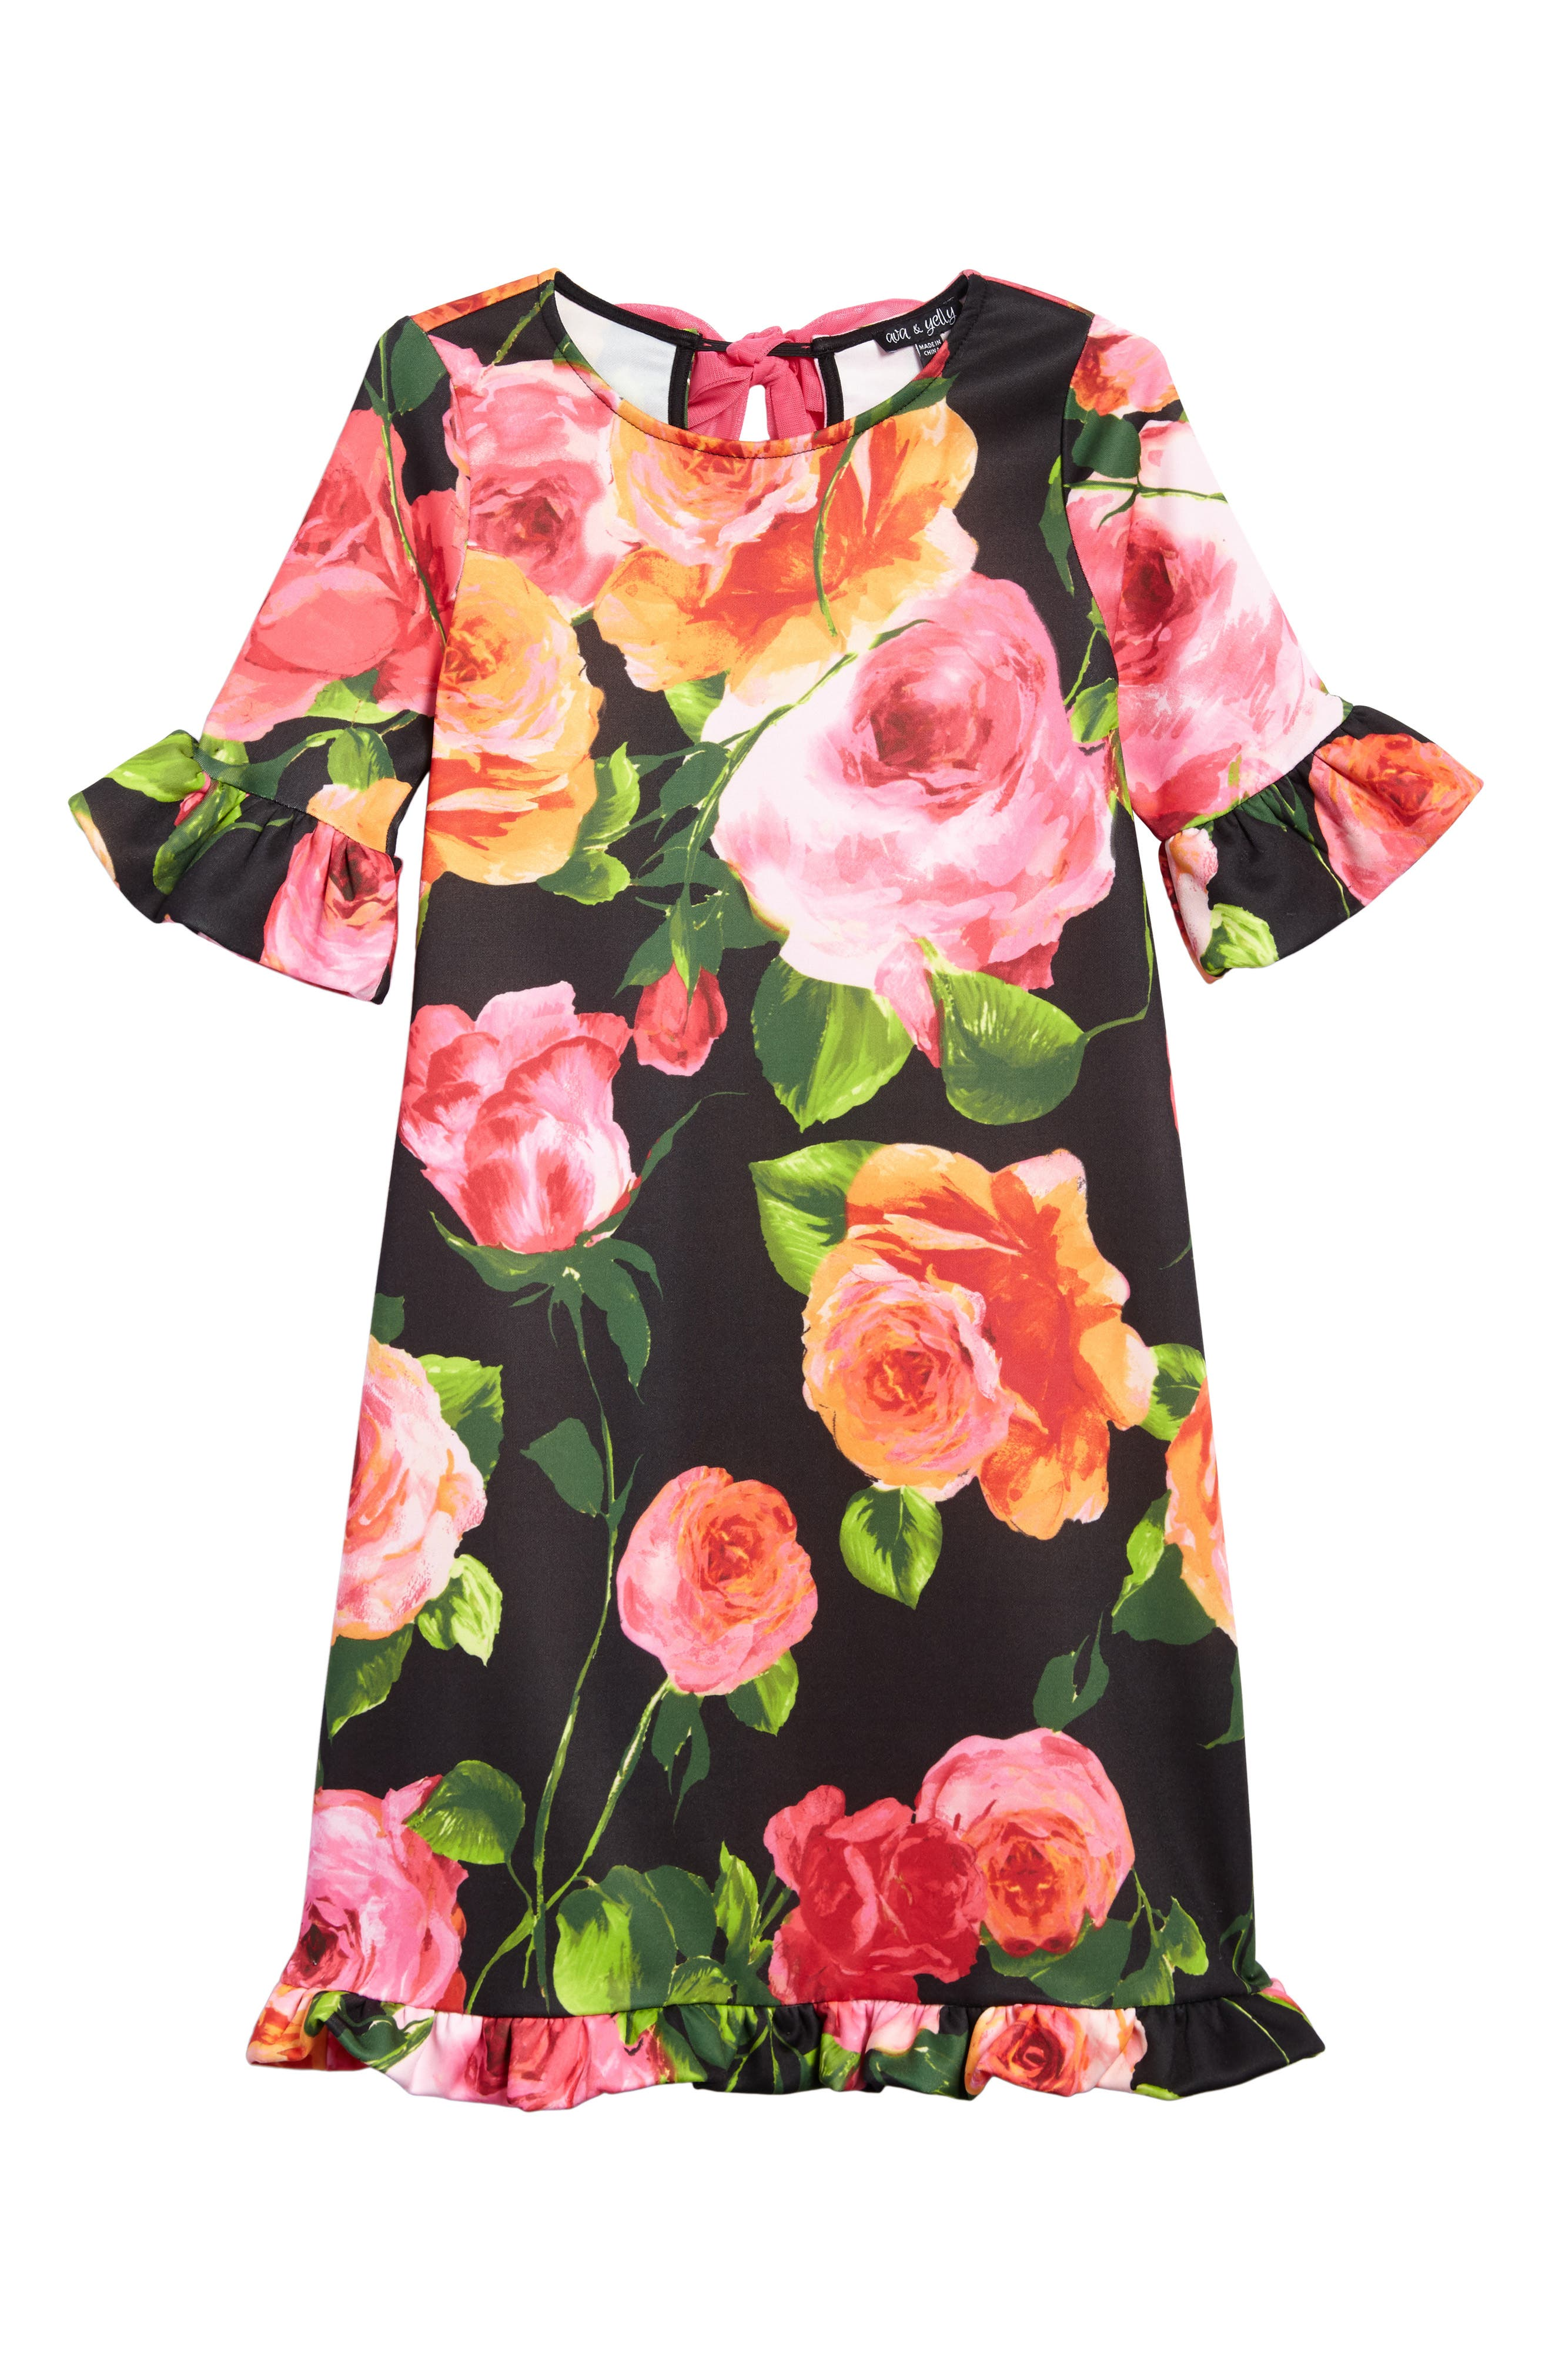 Alternate Image 1 Selected - Ava & Yelly Floral Print Shift Dress (Big Girls)